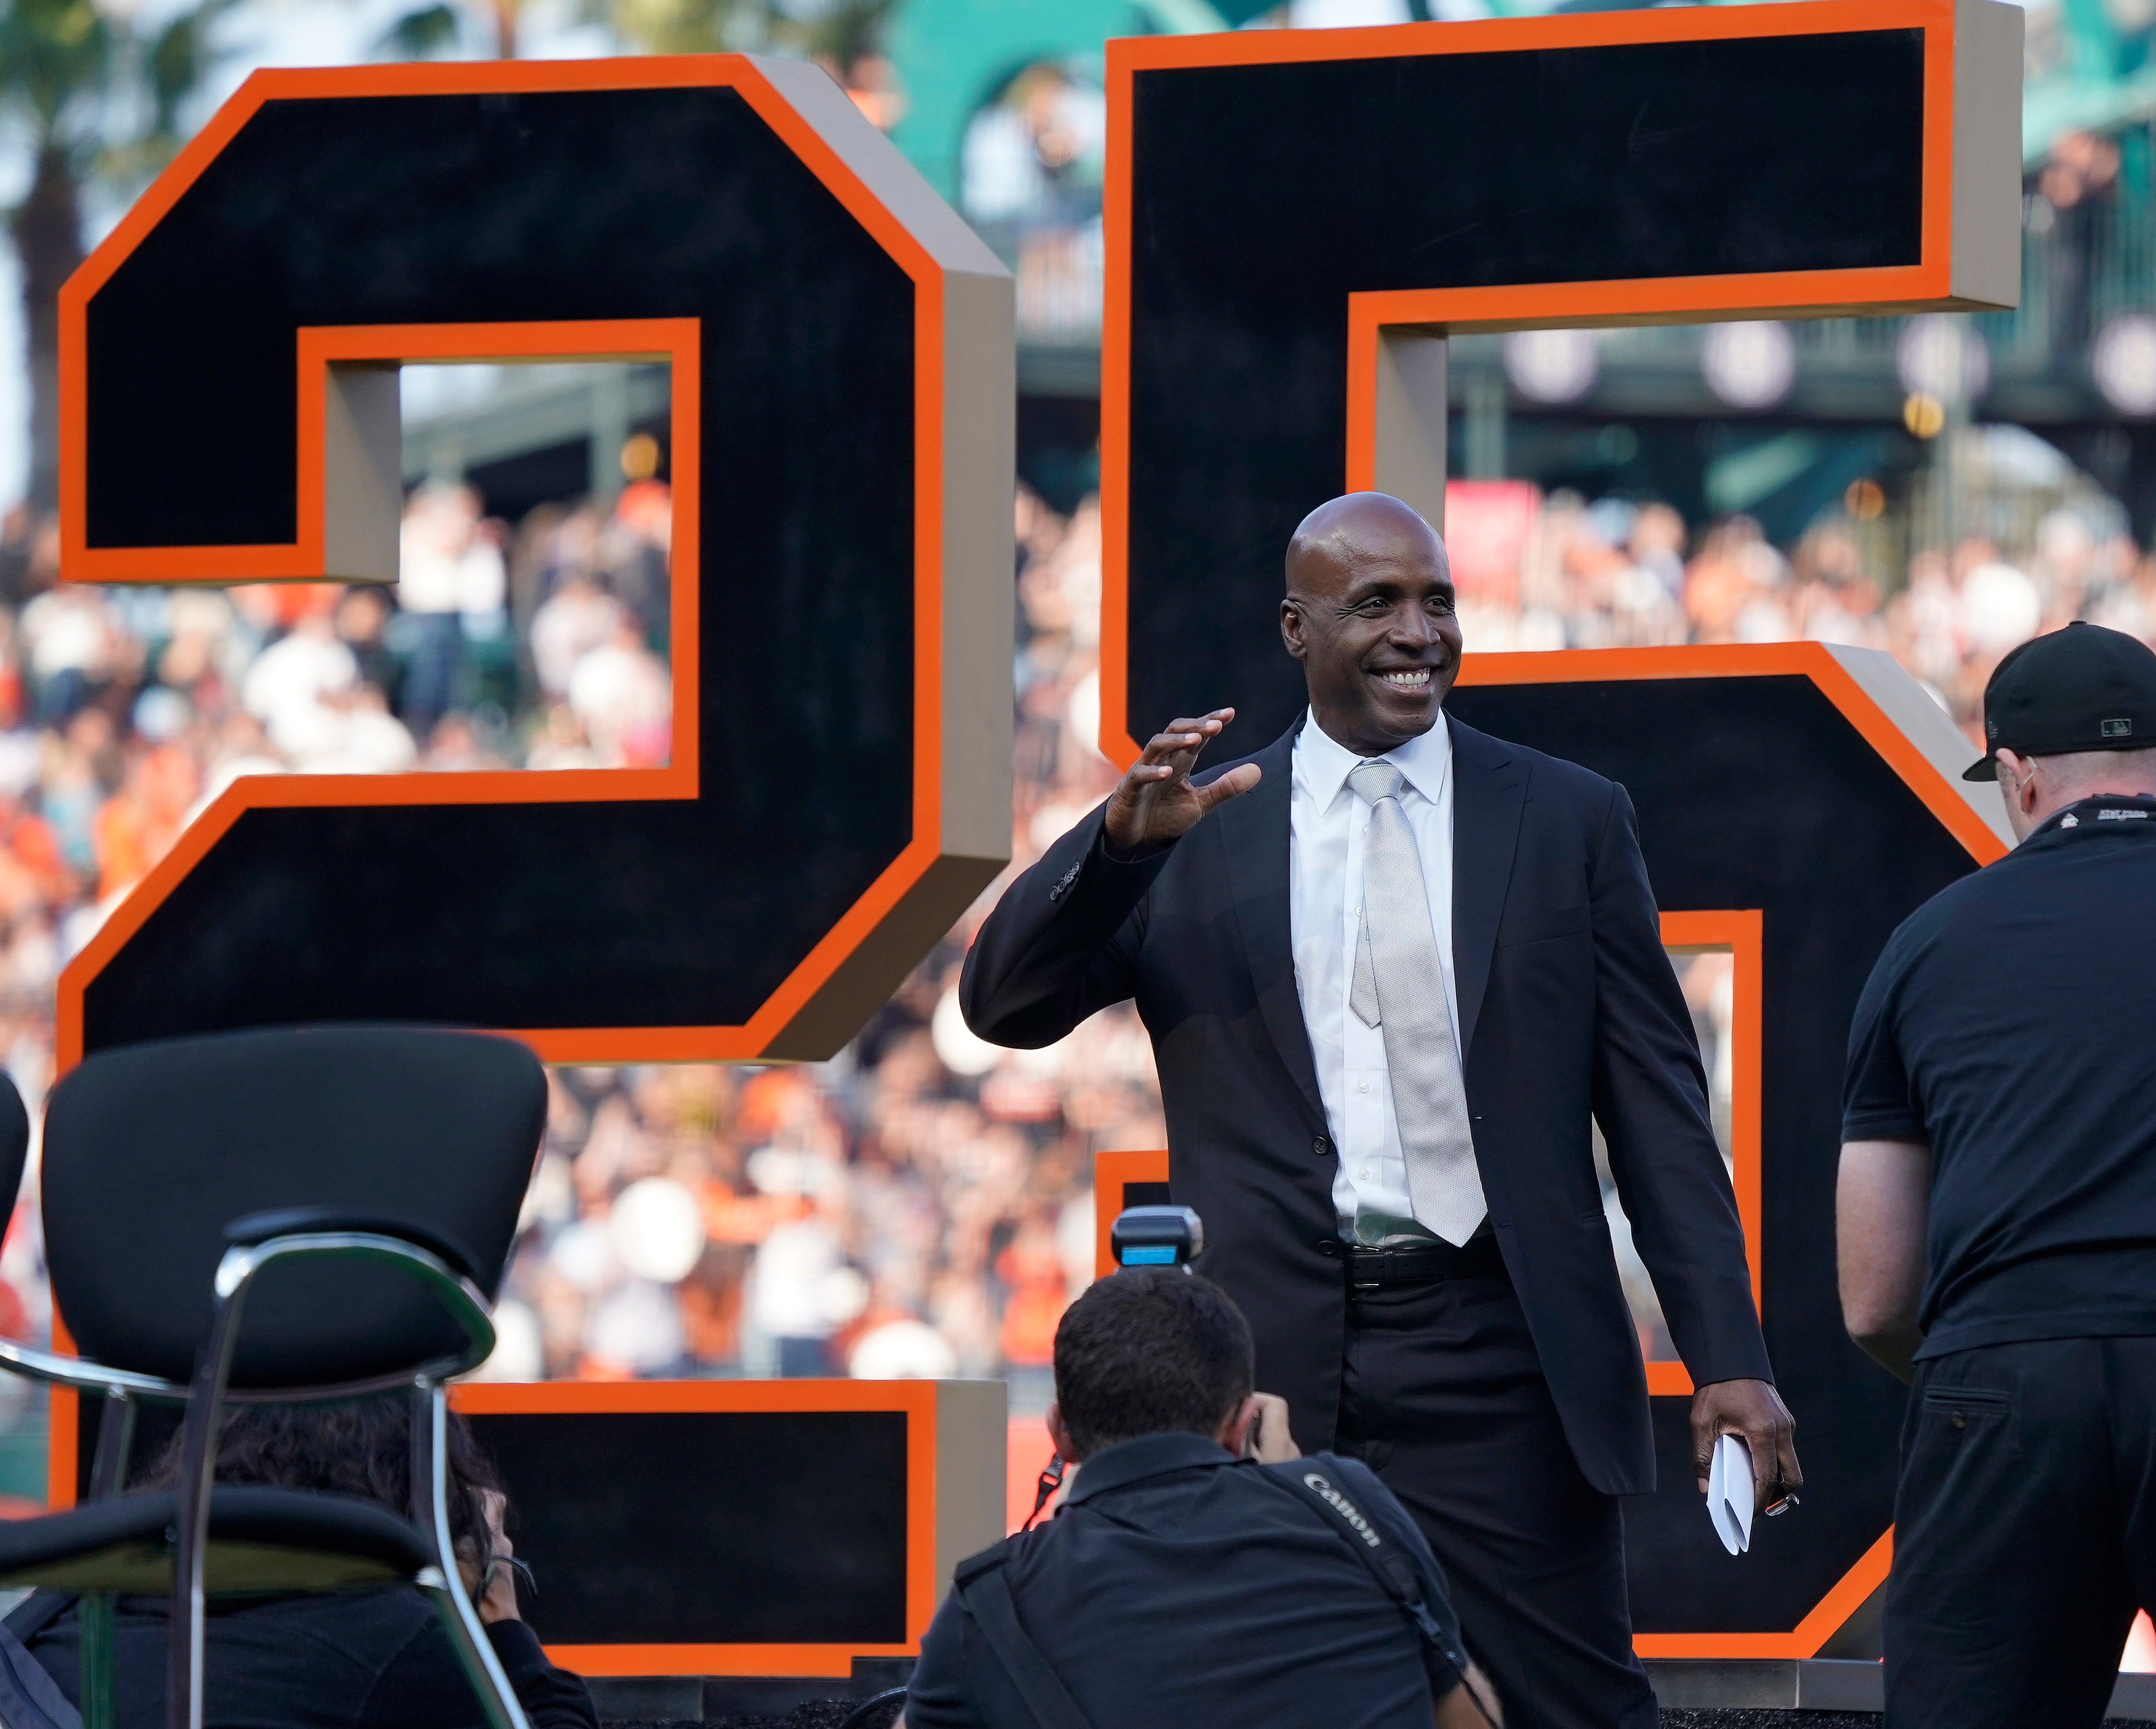 Willie Mays pushes for Barry Bonds to be voted into Hall of Fame as Giants retire No. 25